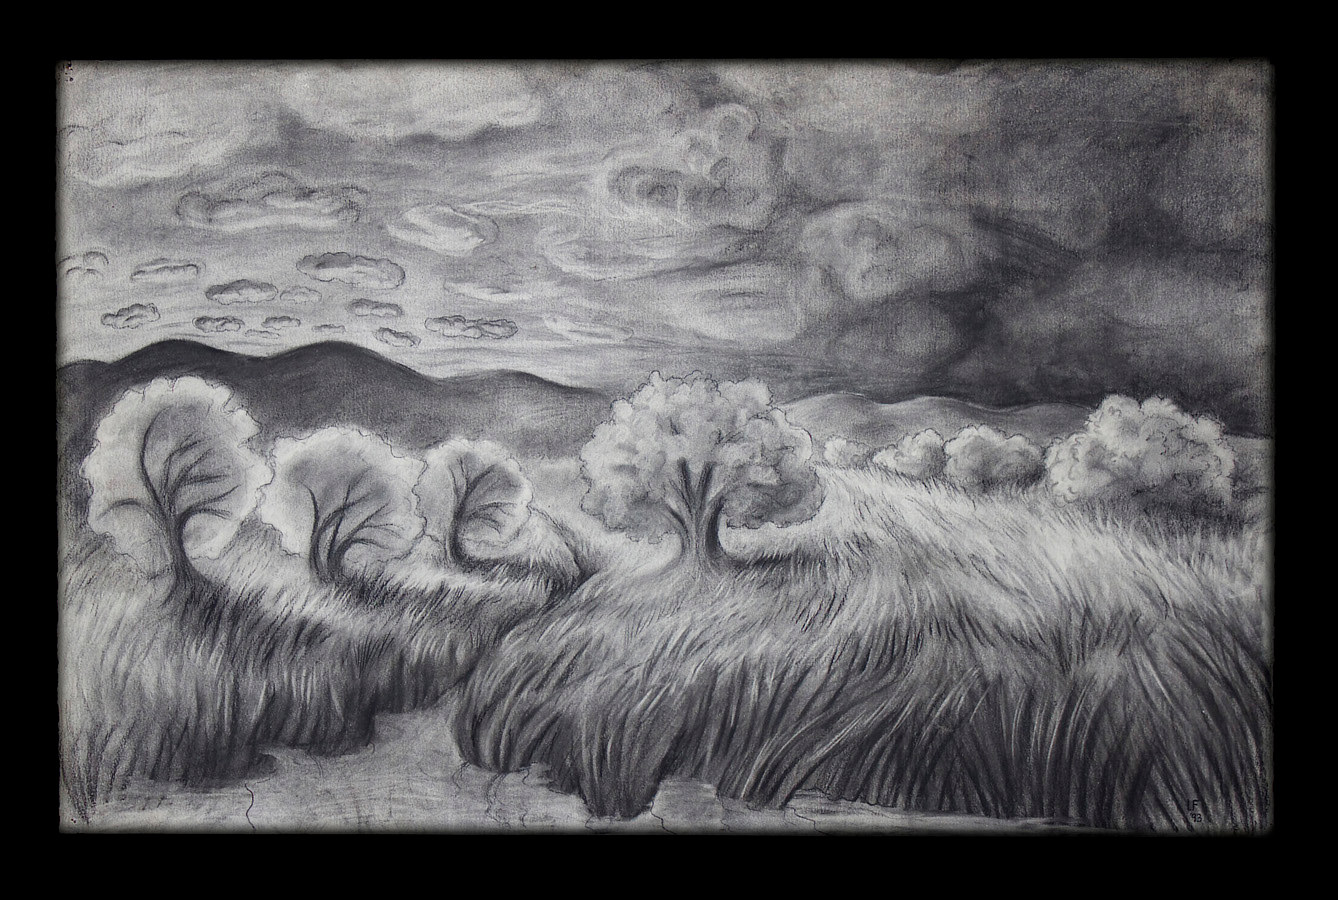 Evening in the Fields, charcoal on paper, 23 x 36 in, Laurey Foulkes by Laurey  Foulkes